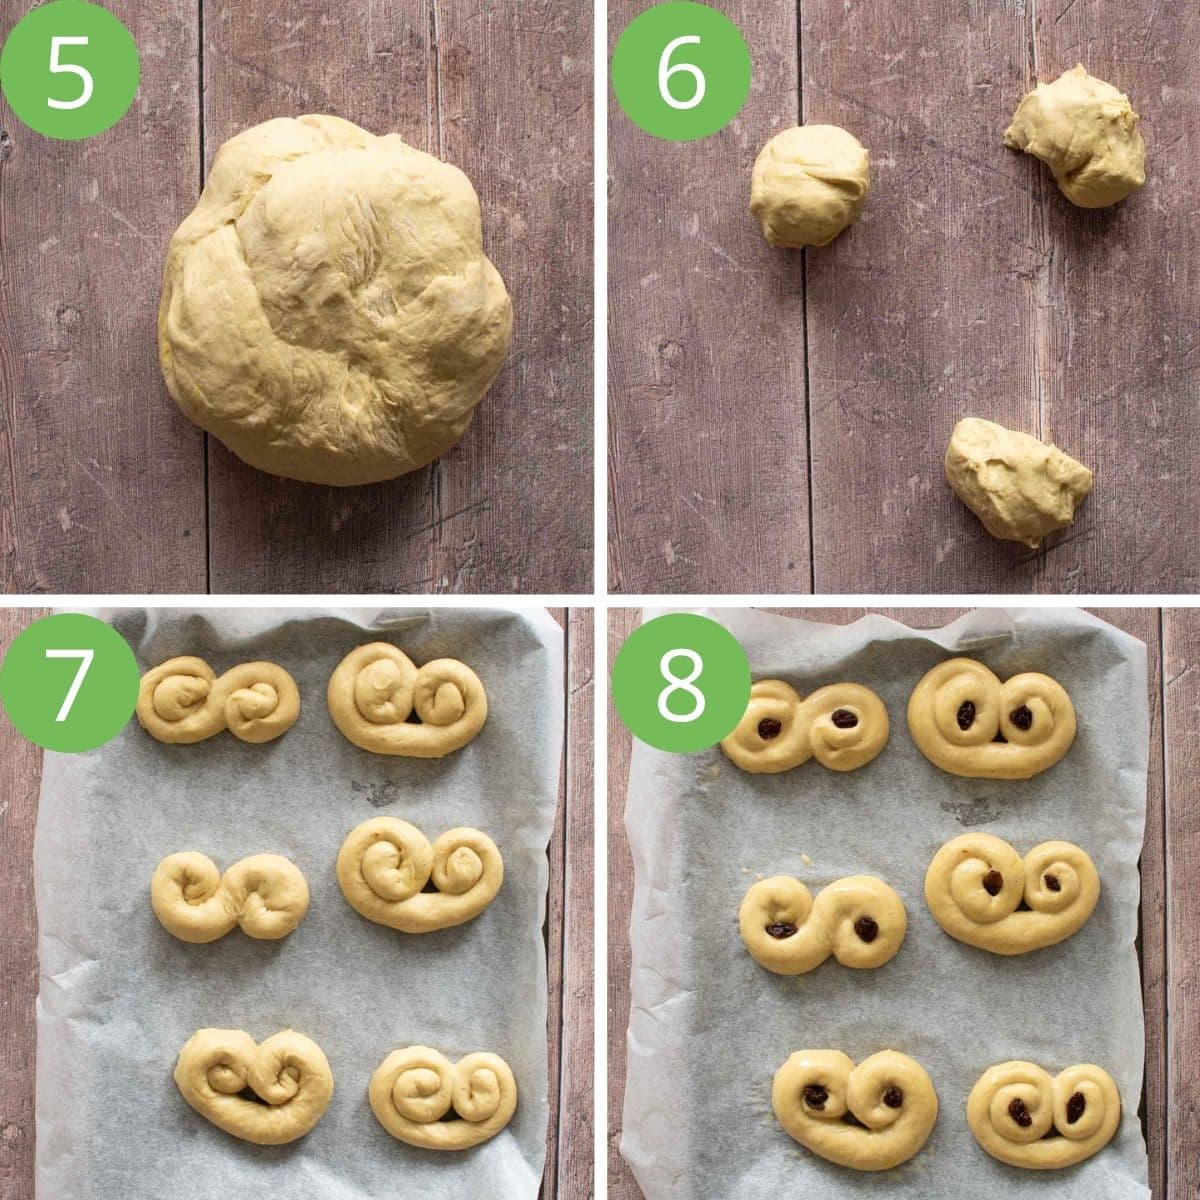 Step by step images showing how to roll out lussekatter.